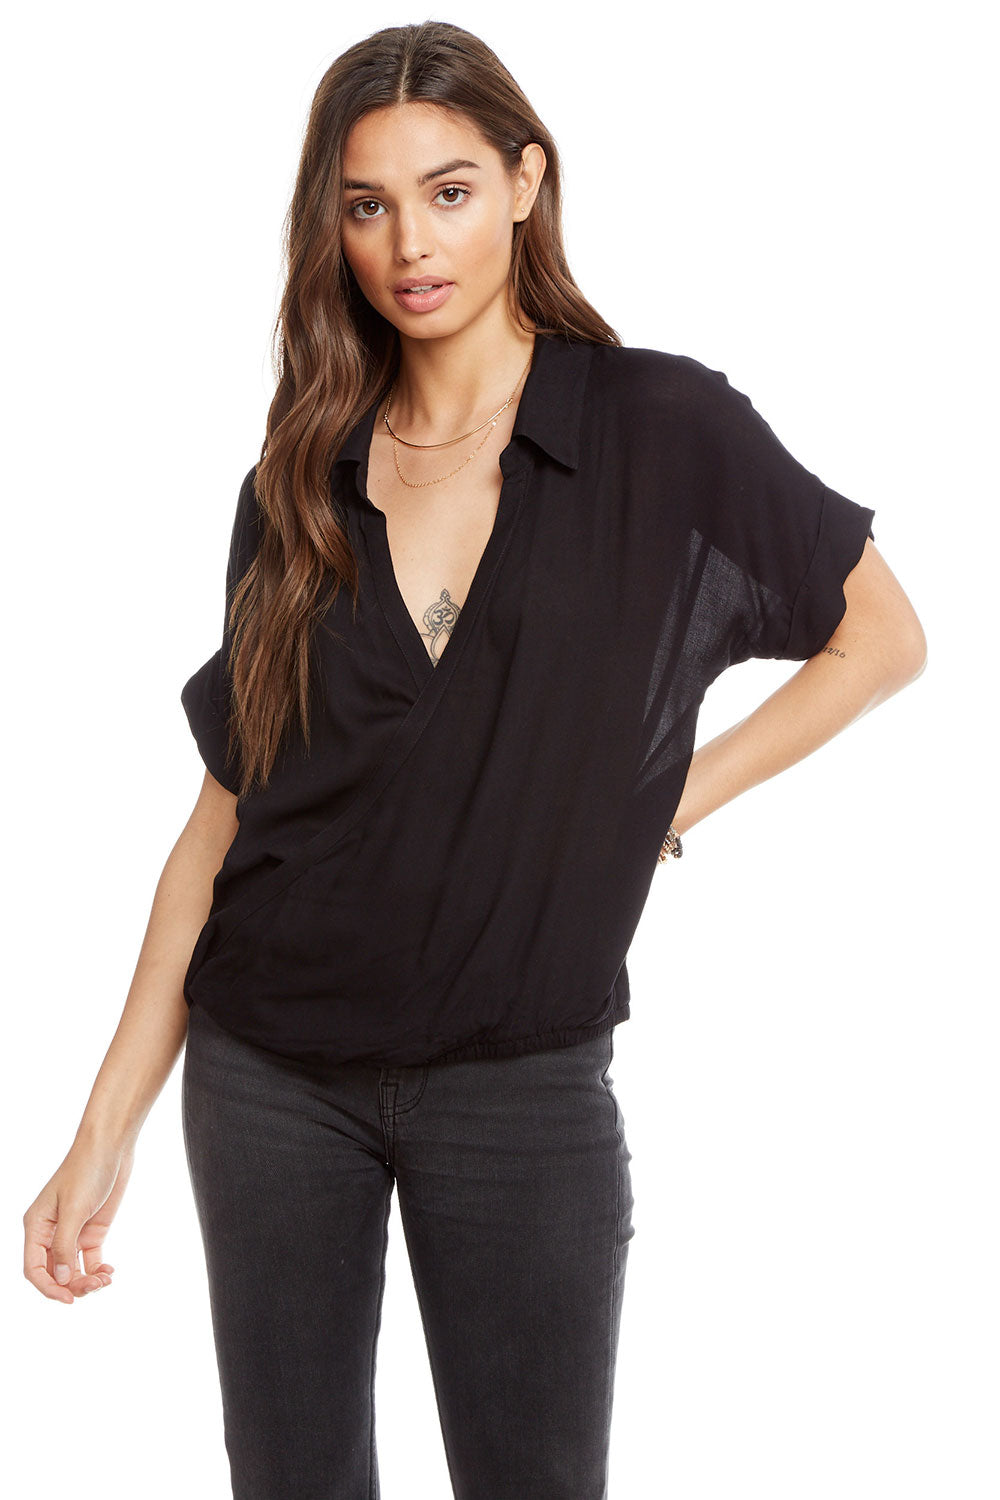 Heirloom Gauze Rolled Sleeve Surplice Short Sleeve Shirt WOMENS chaserbrand4.myshopify.com